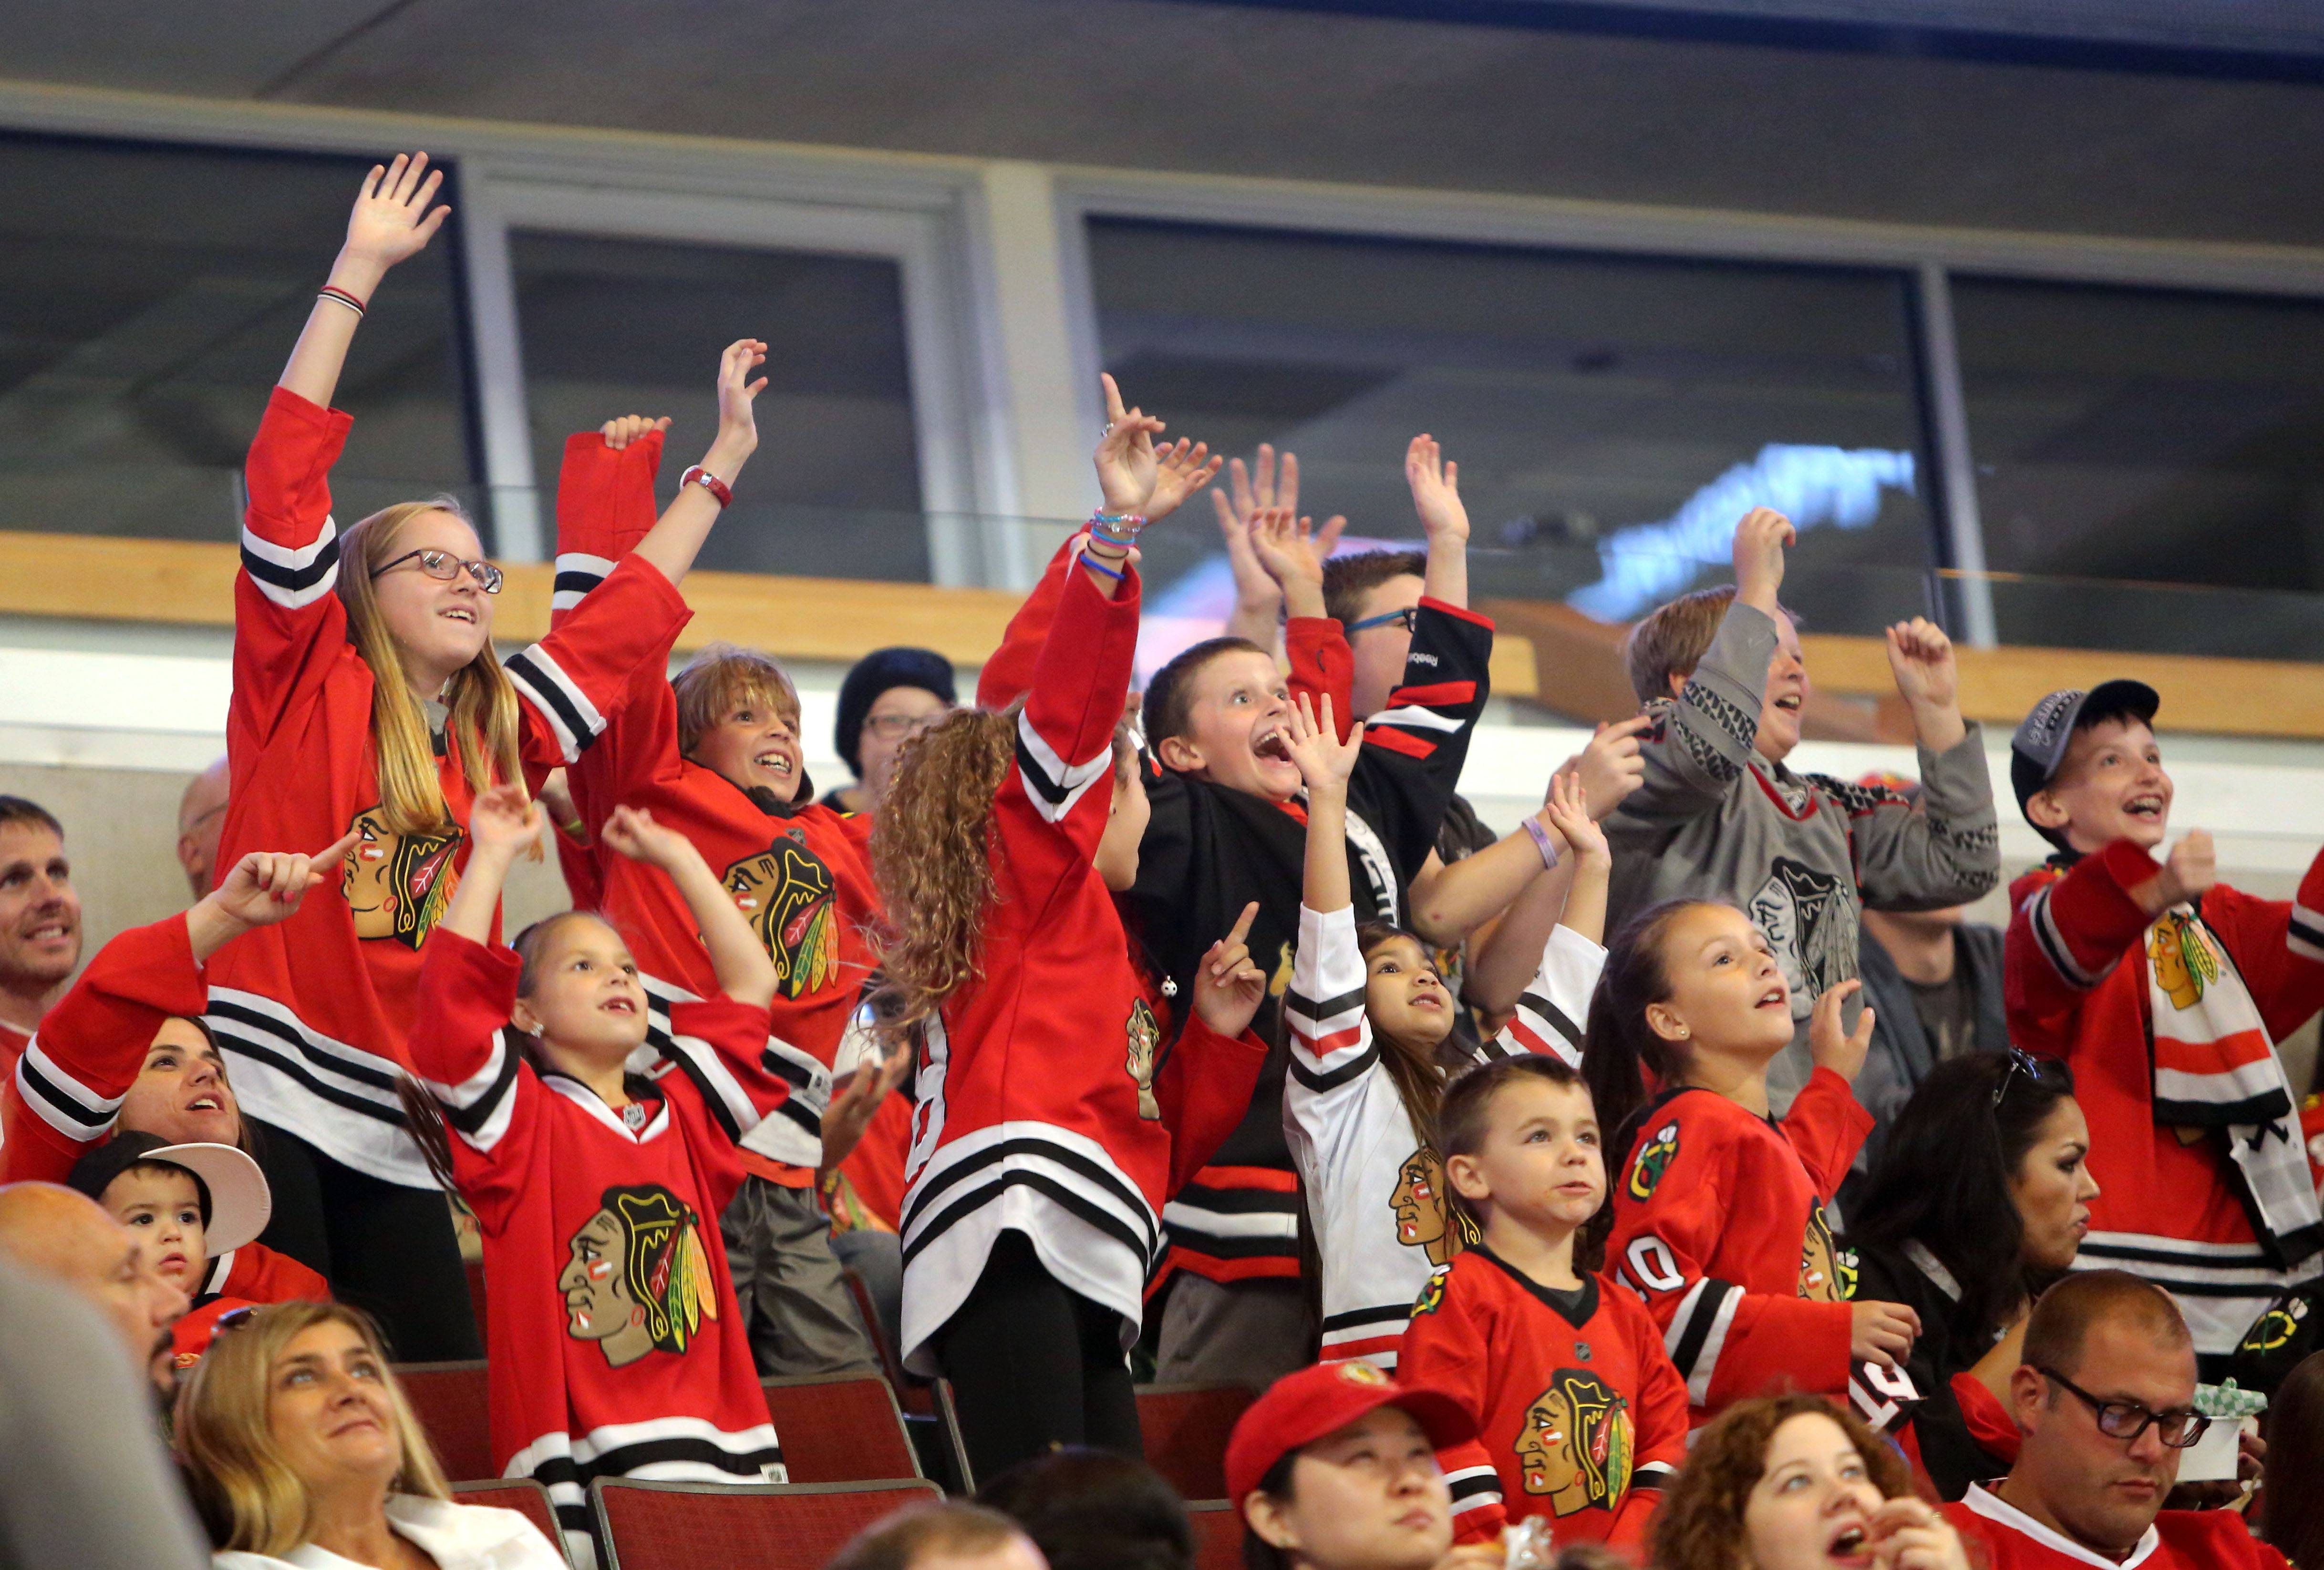 Steve Lundy/slundy@dailyherald.com/2015 file Attending the Blackhawks training camp festival Saturday is one of several opportunities for fans to watch the team before the regular season begins.